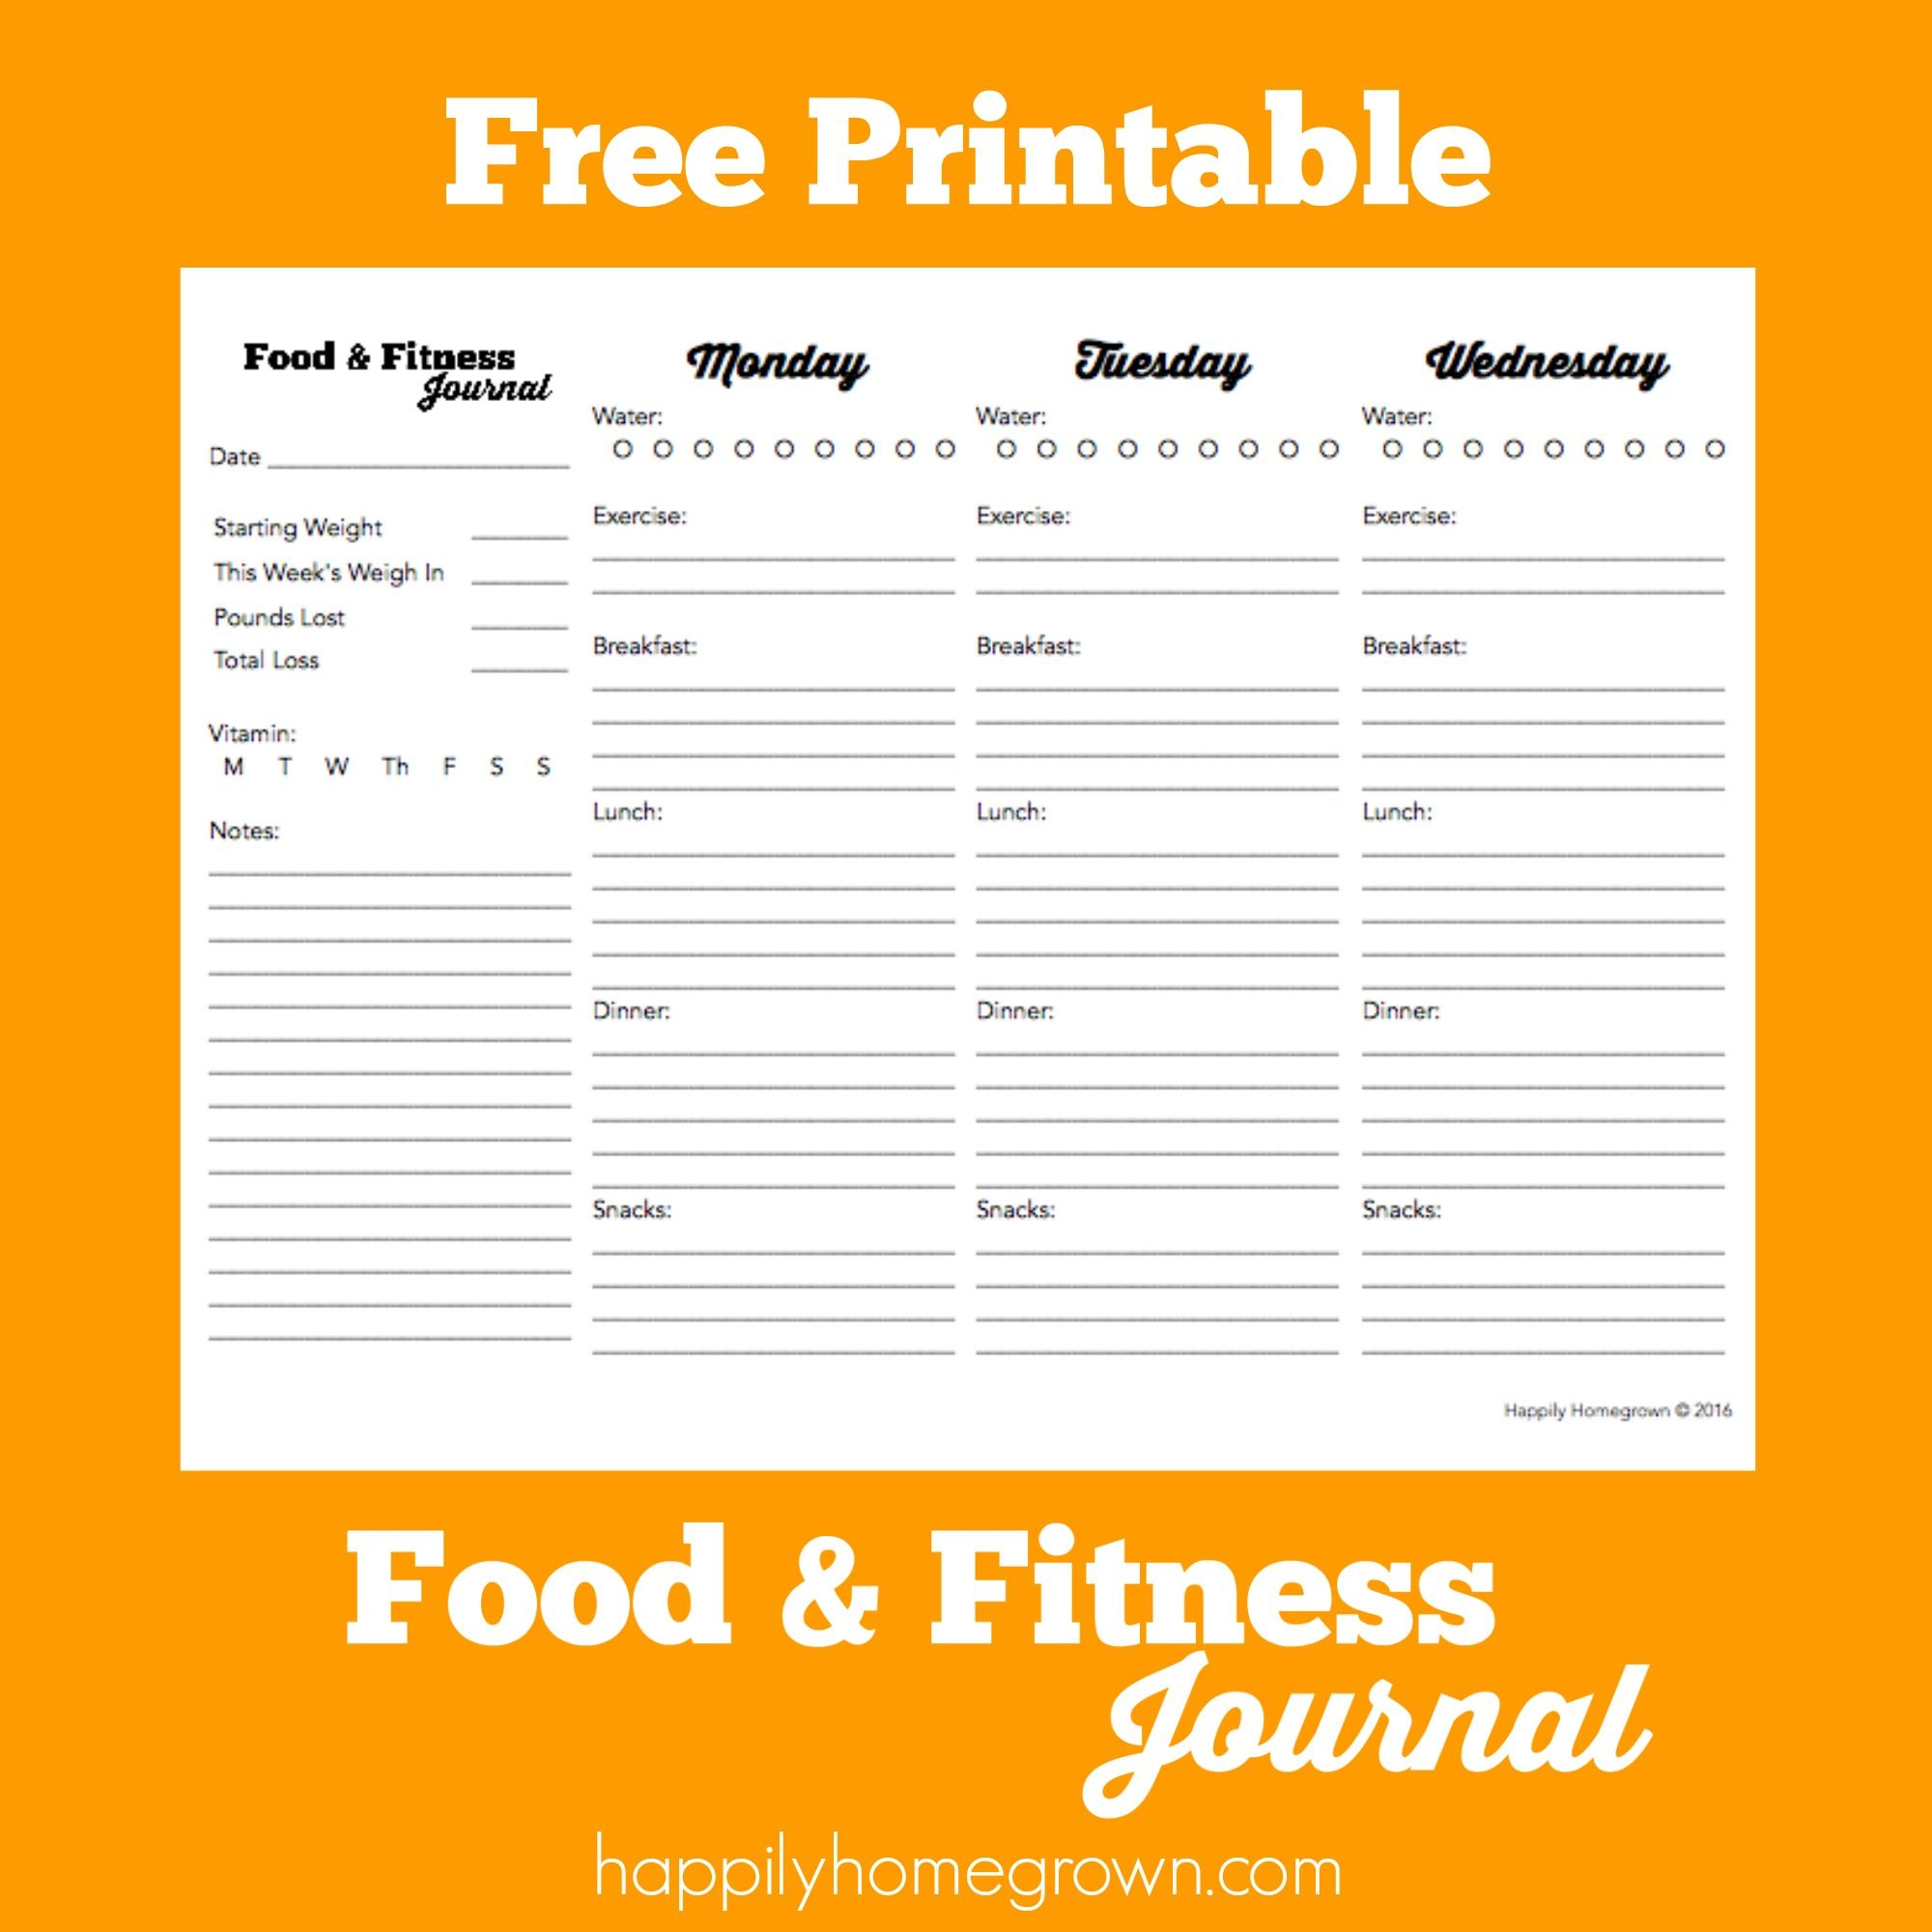 Fan image with printable workout journals